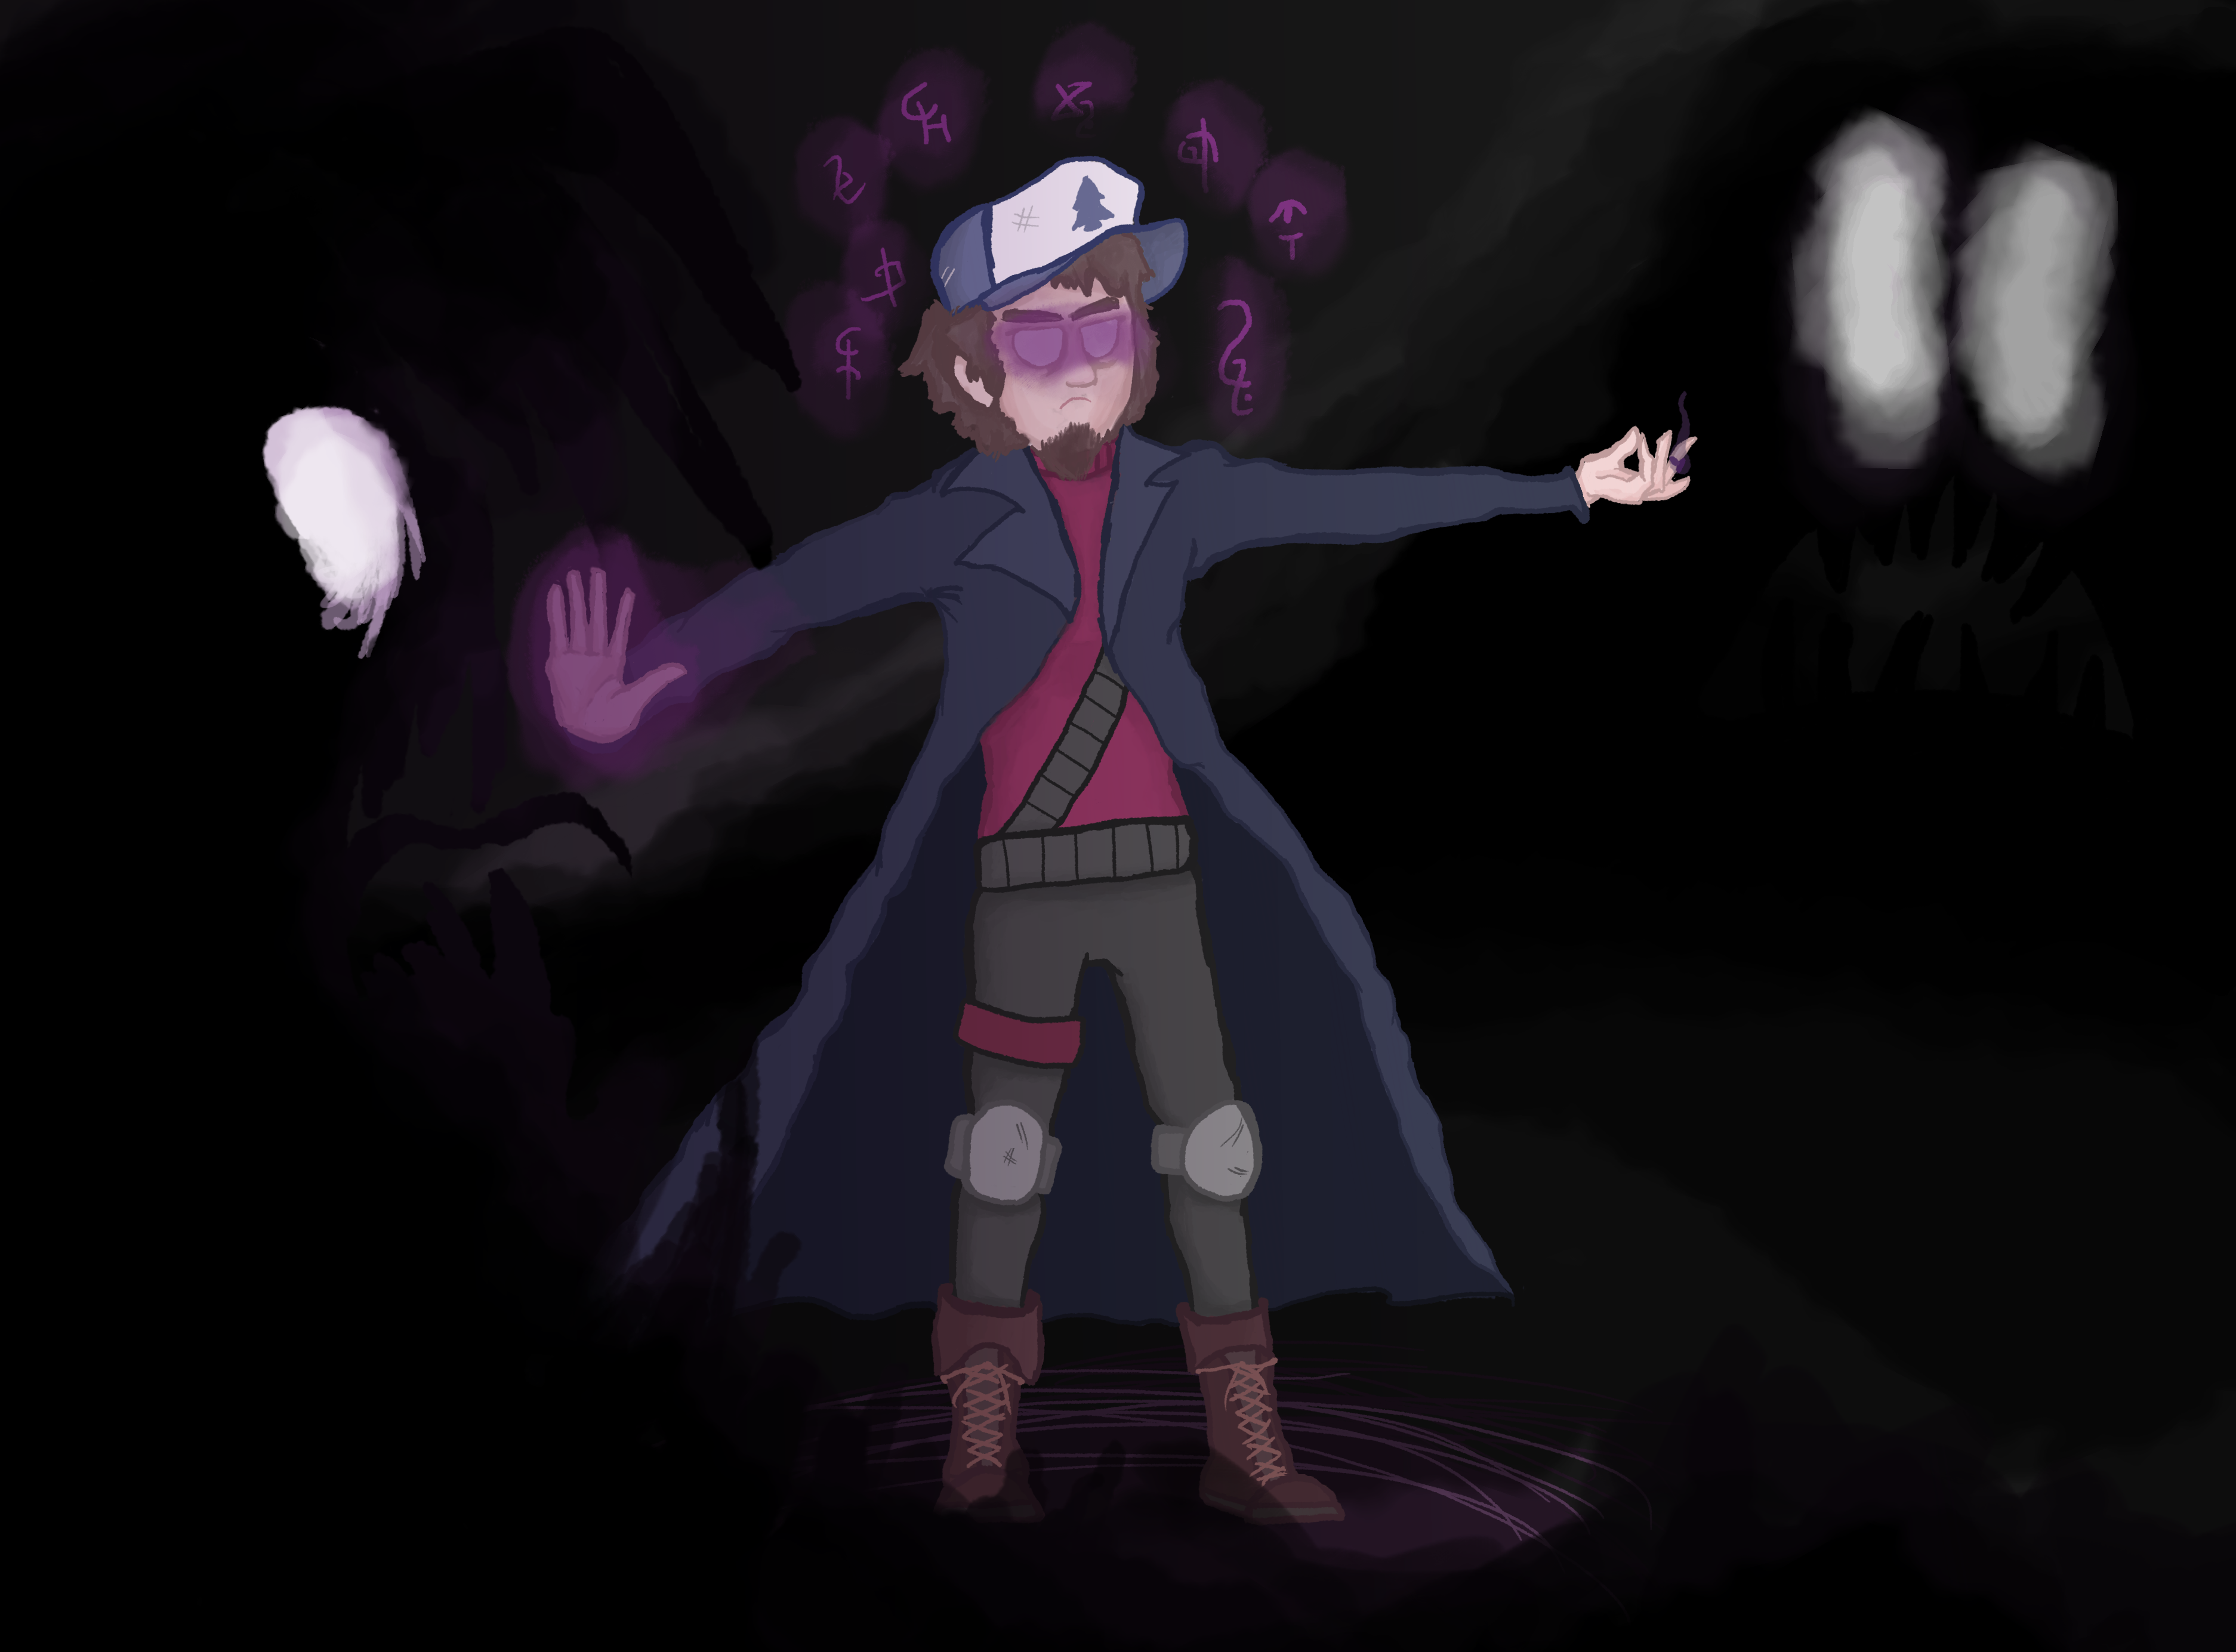 Dipper Pines the illuminated